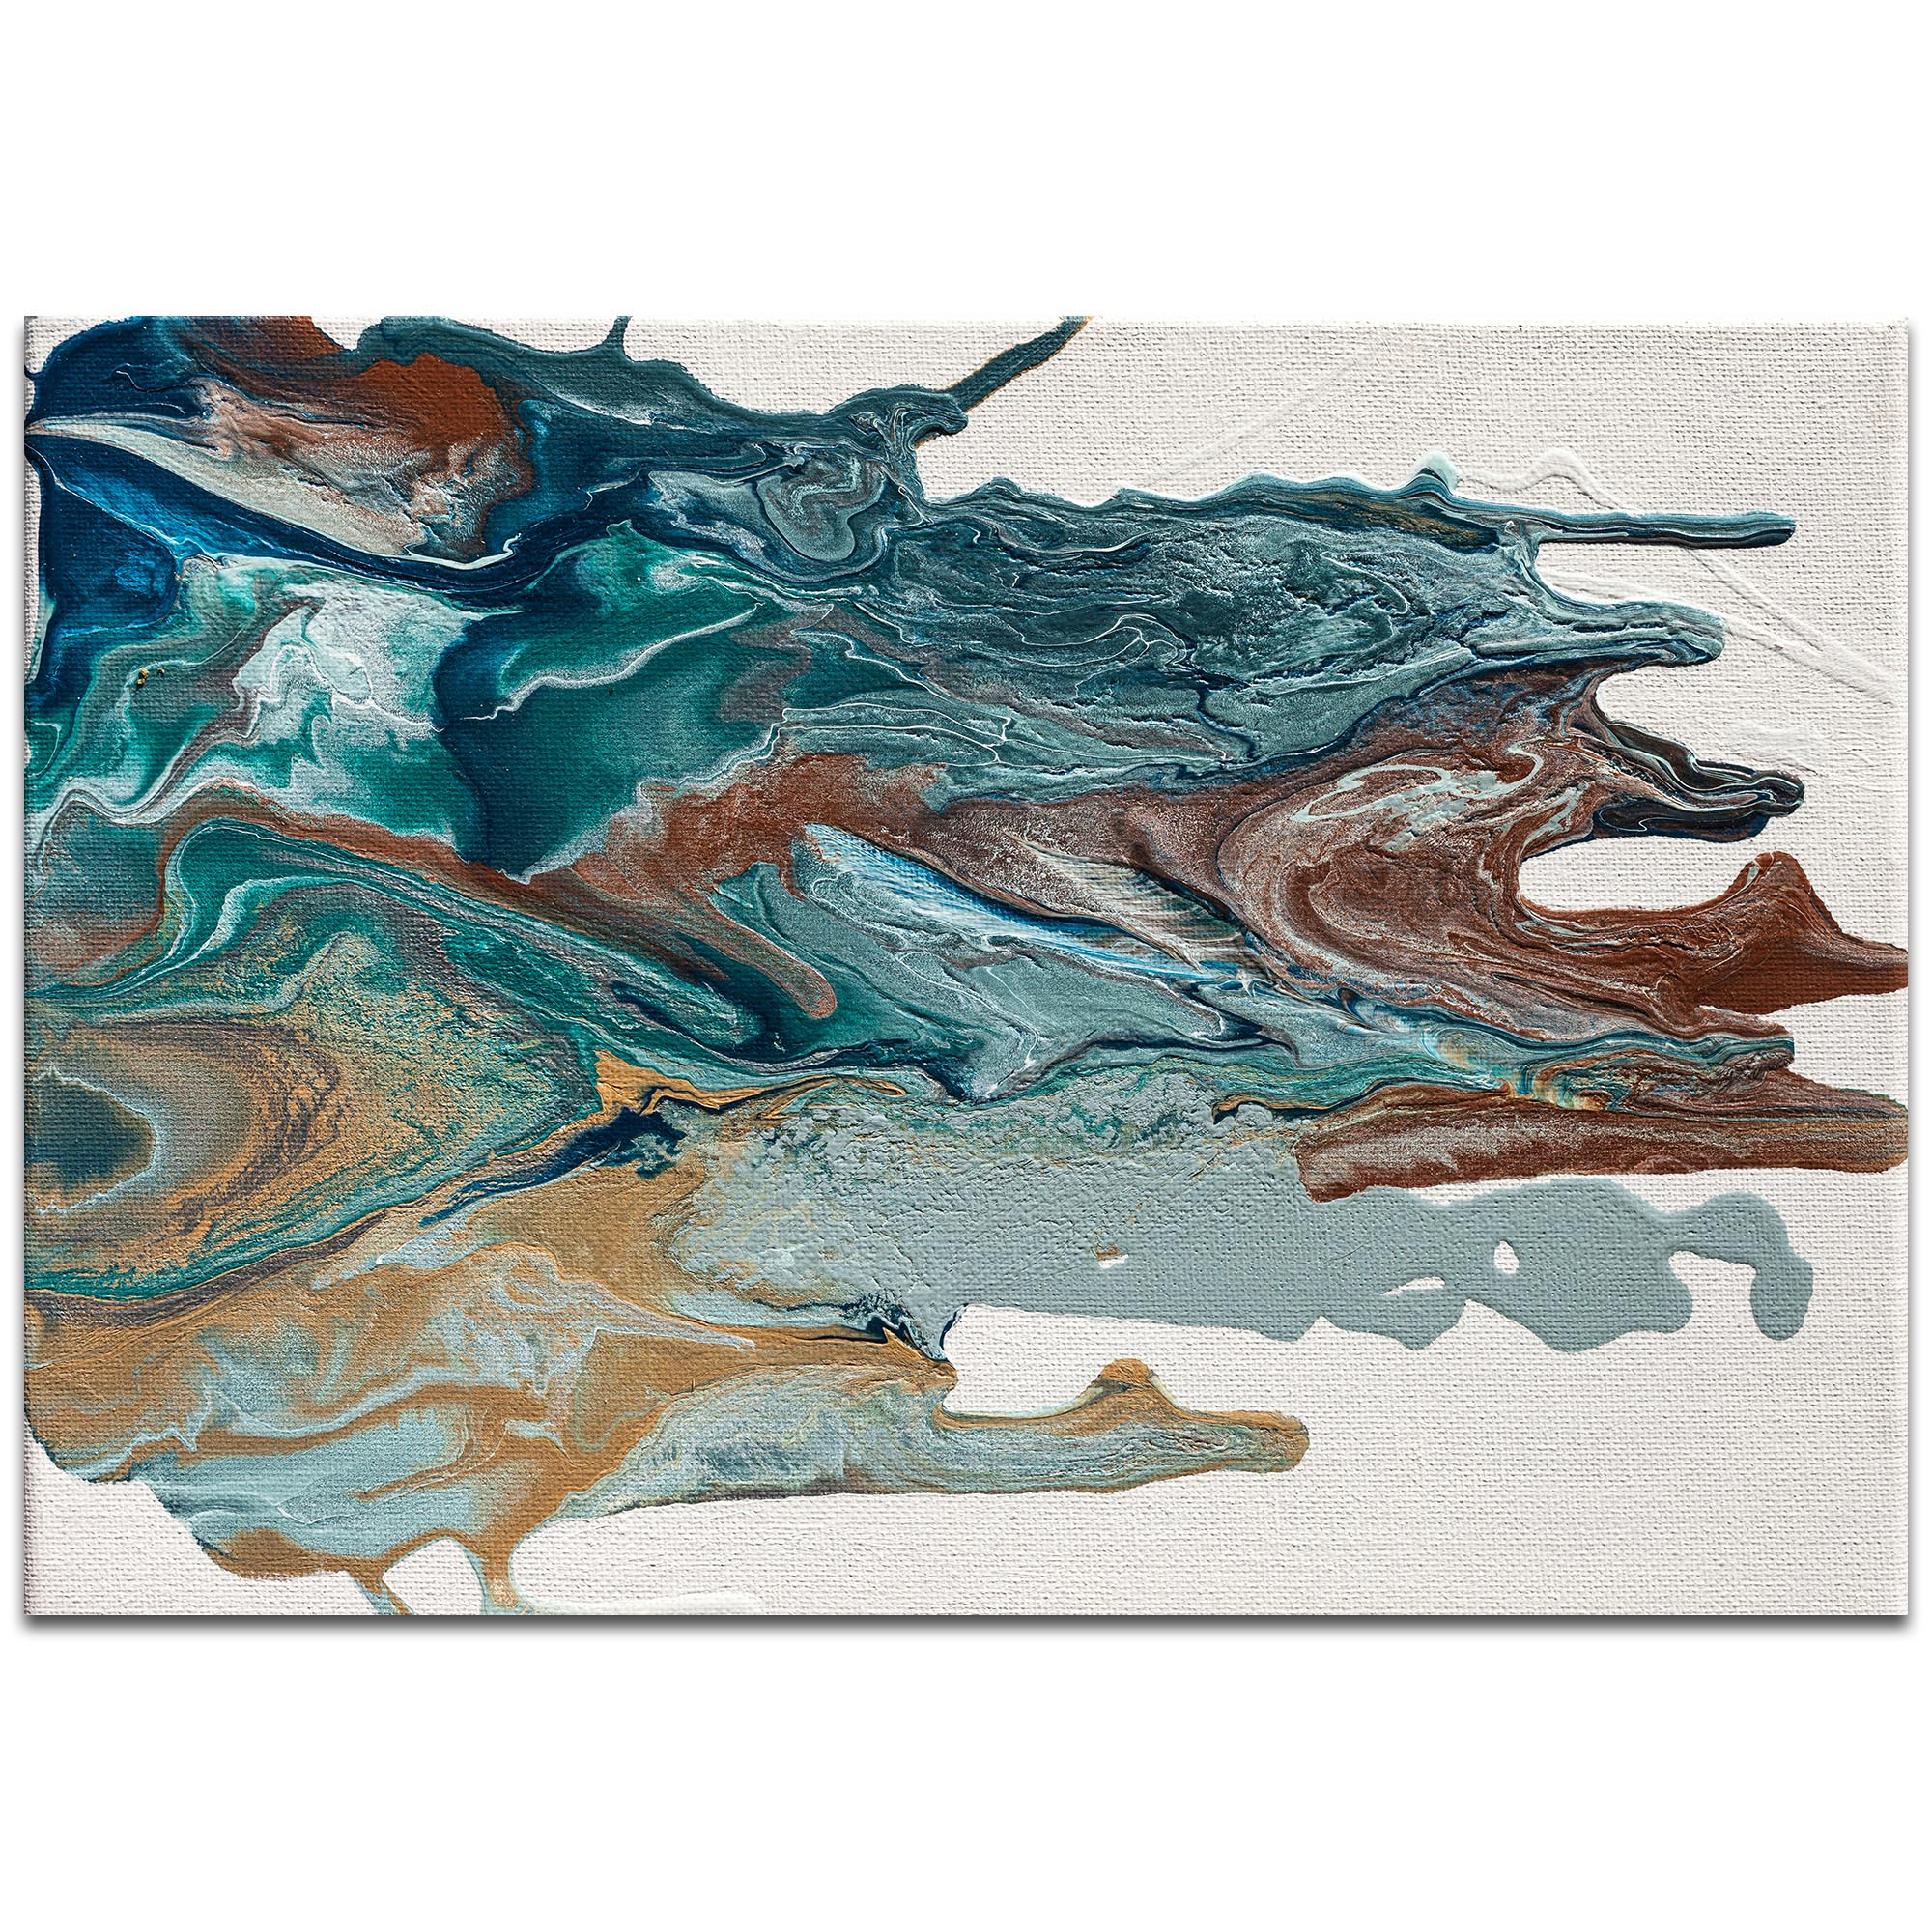 Abstract Wall Art 'Earth 1' - Urban Splatter Decor on Metal or Plexiglass